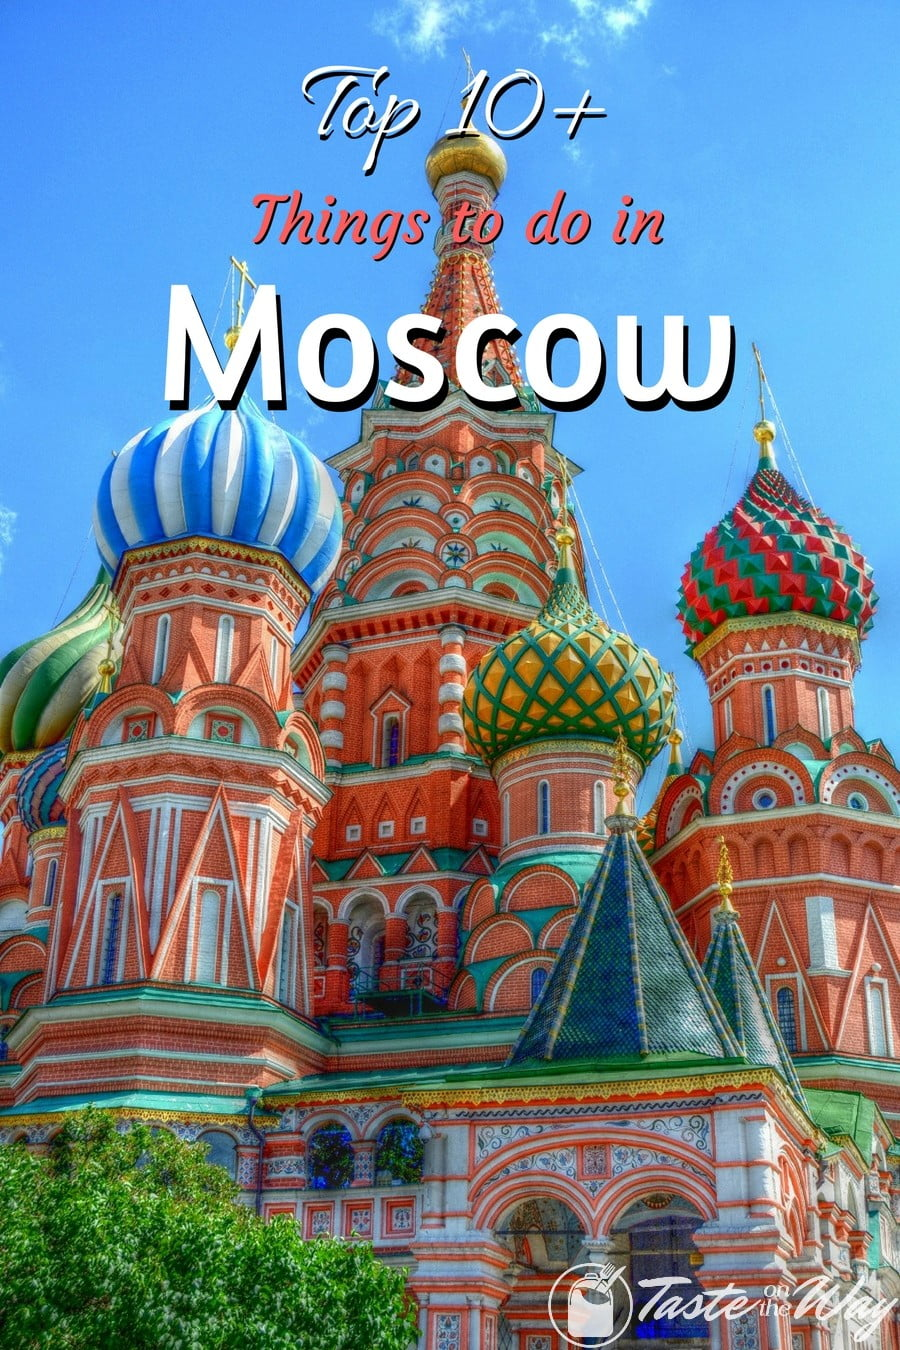 Check out top 10 (and more) #thingstodo in #Moscow, #Russia #travel #photography @istandarddesign